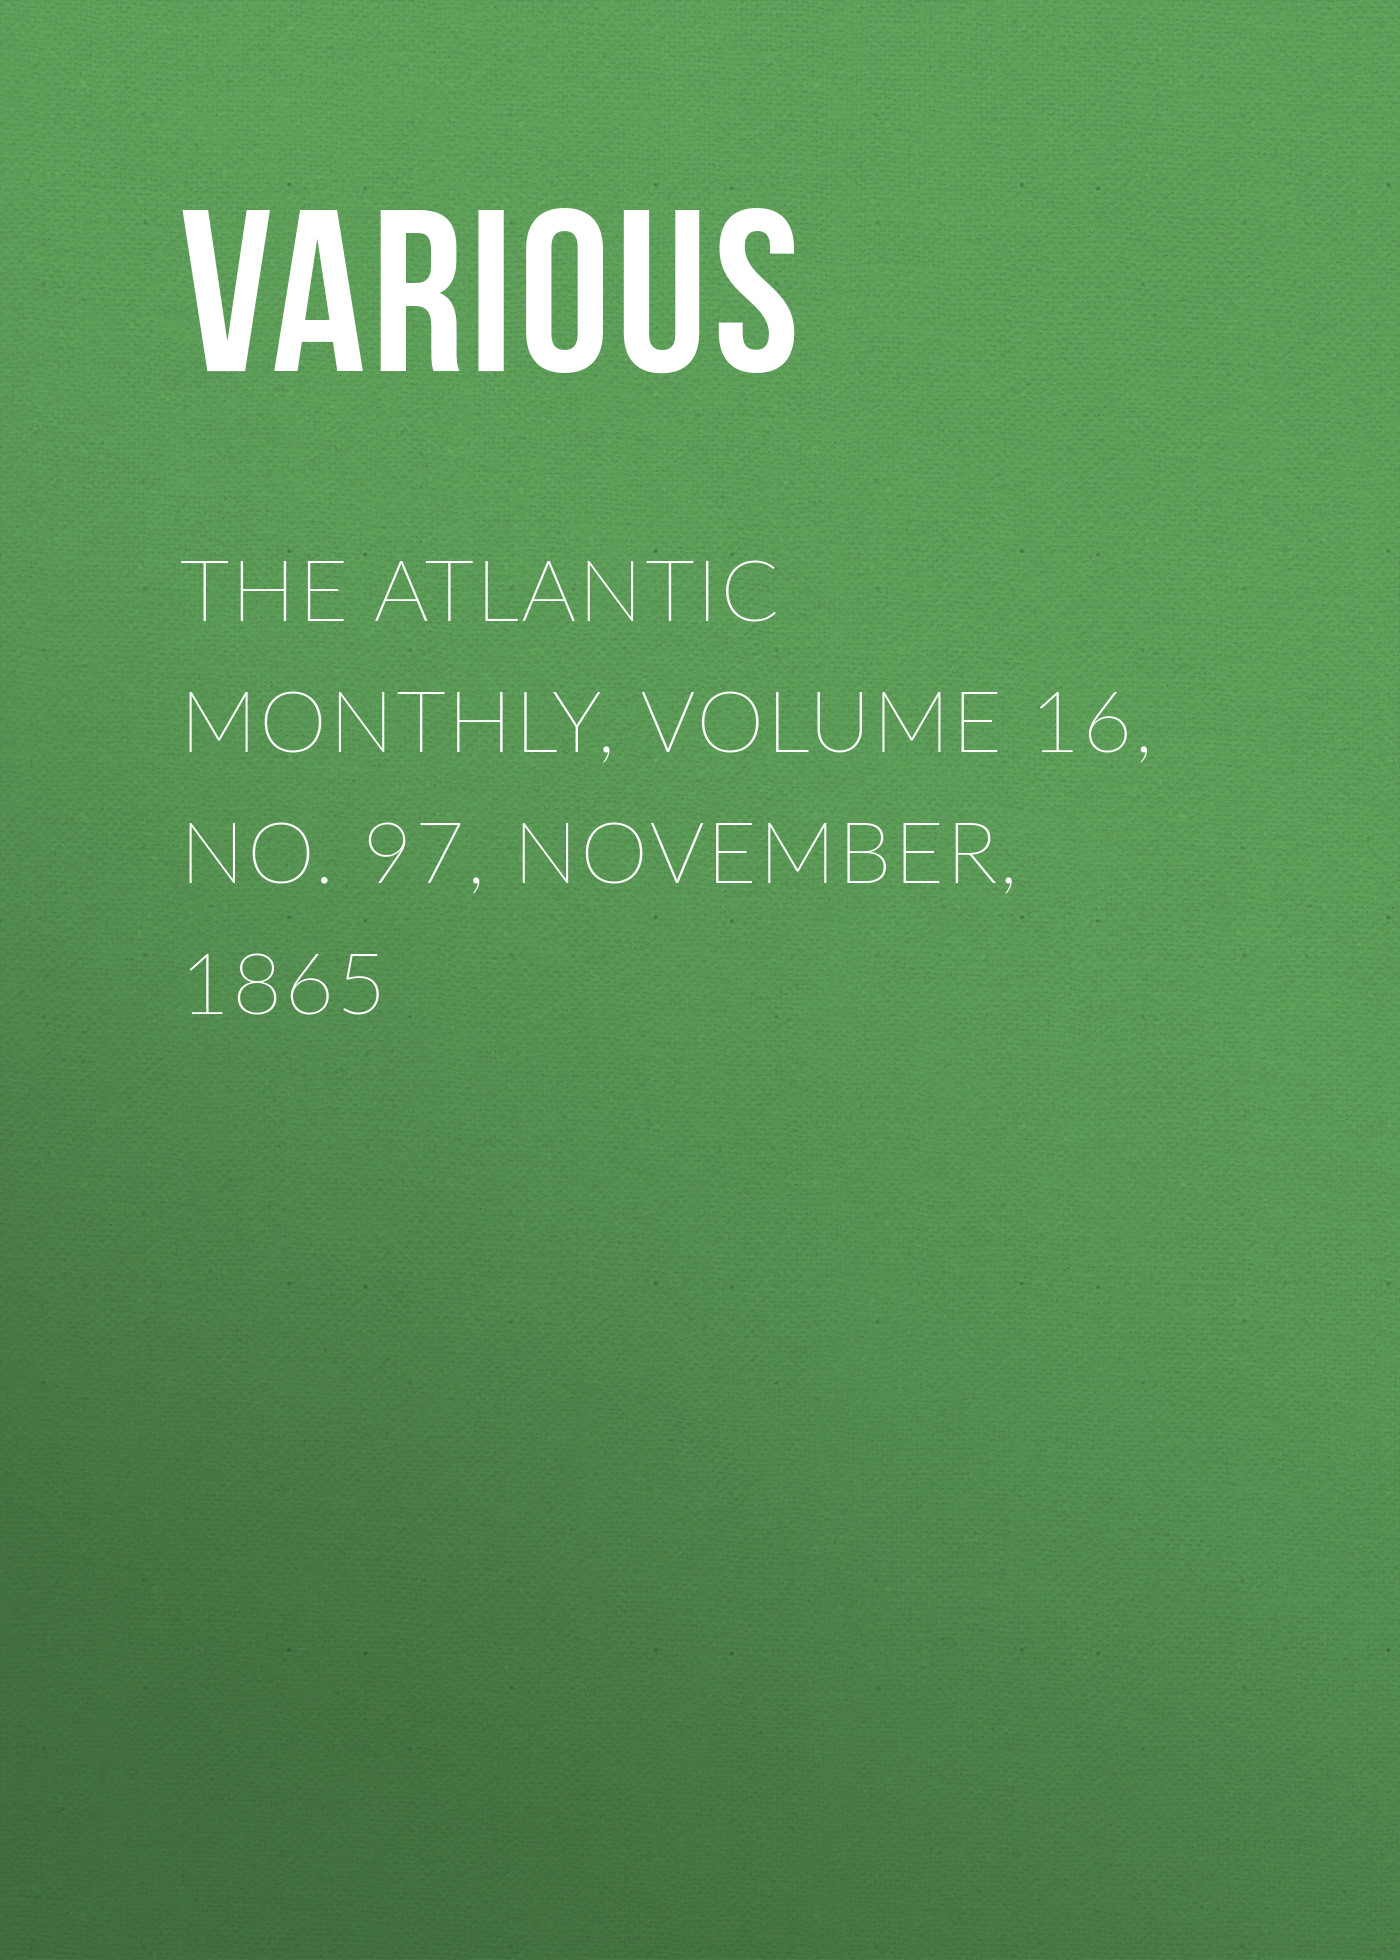 Various The Atlantic Monthly, Volume 16, No. 97, November, 1865 the early november toronto